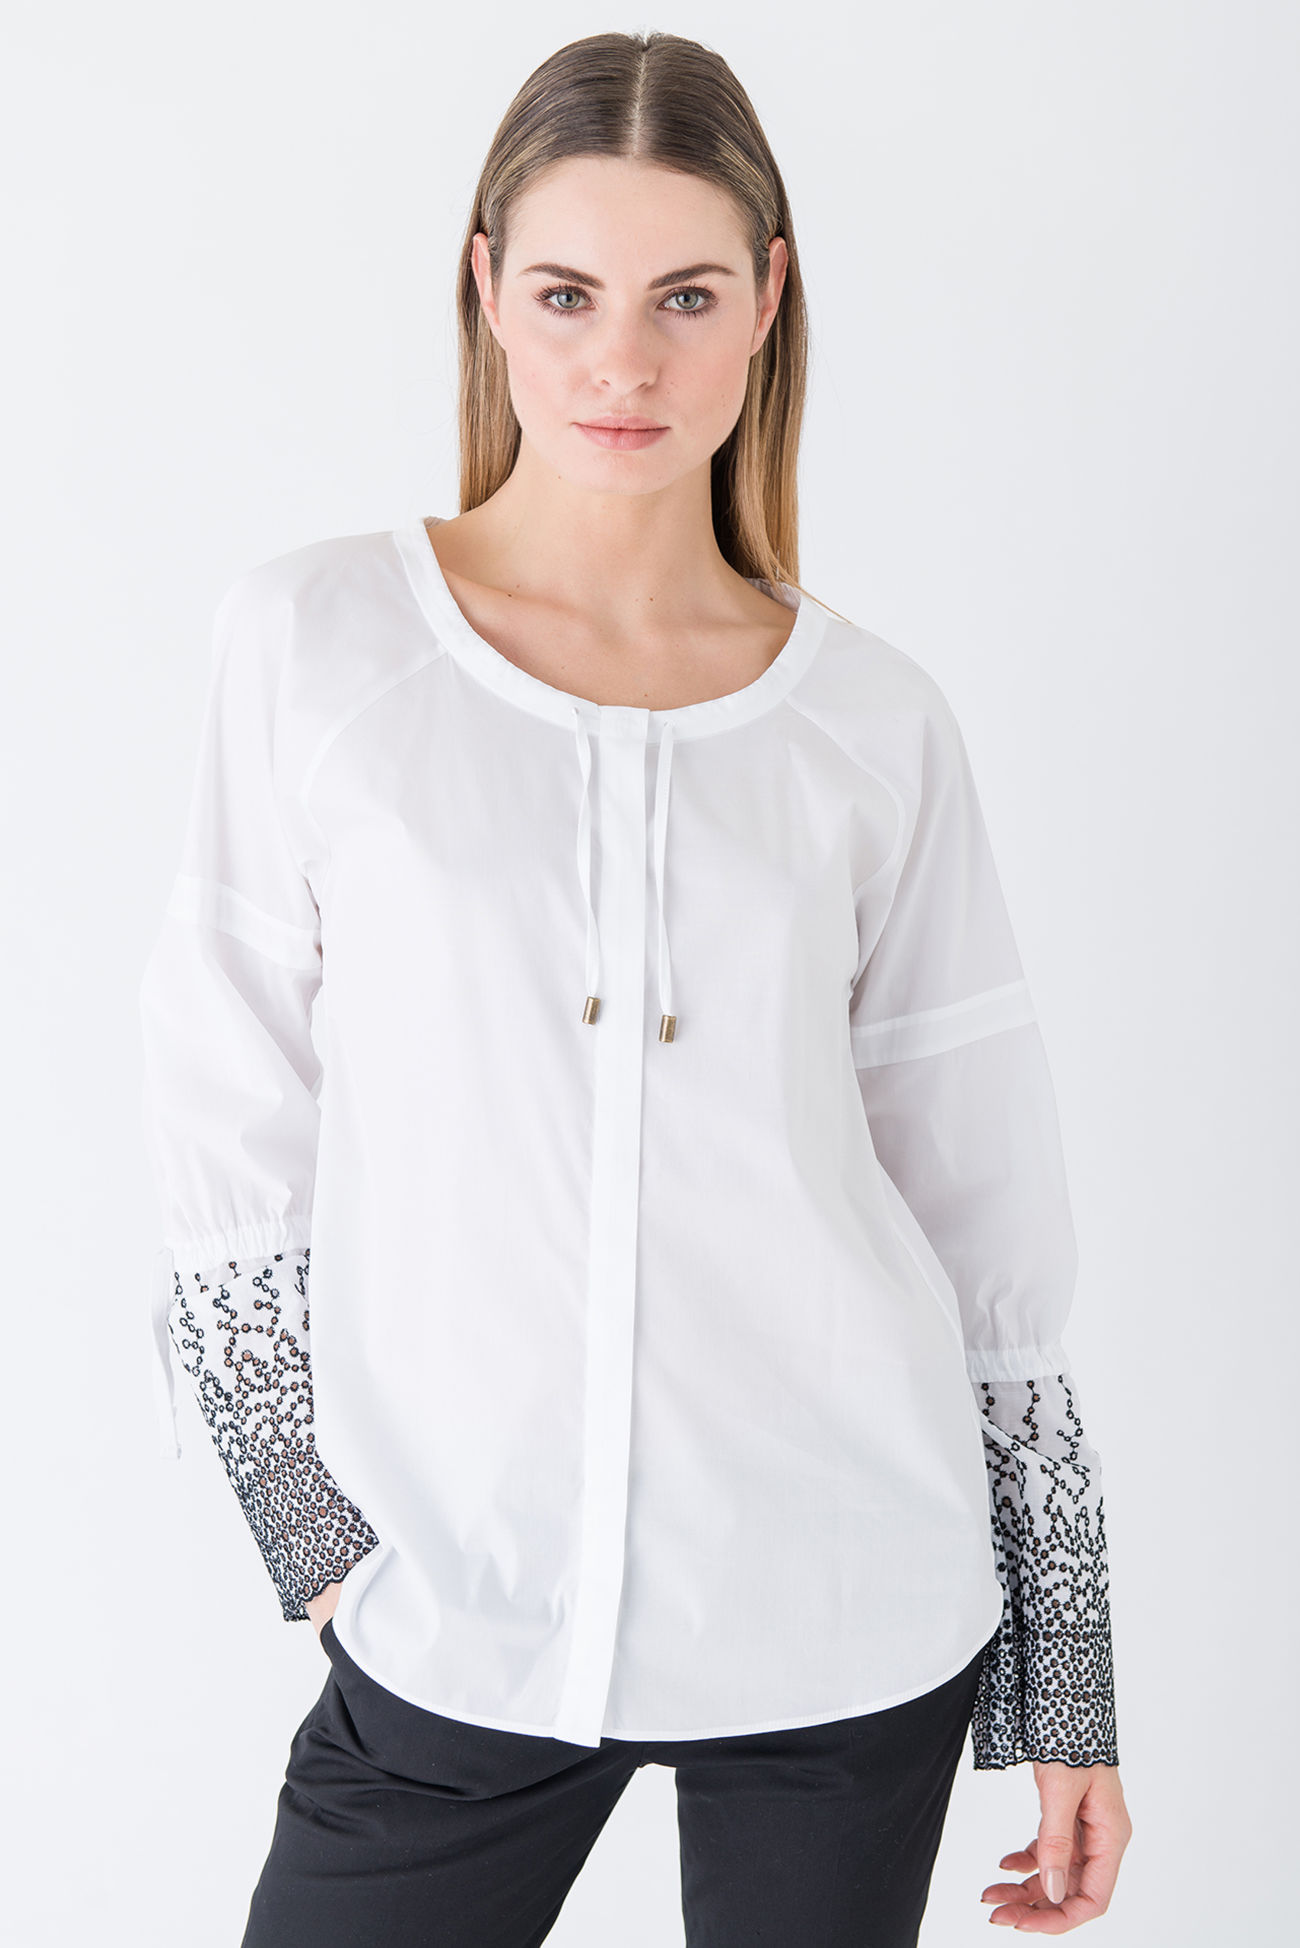 Exquisite cotton blouse with extravagant fabric insert